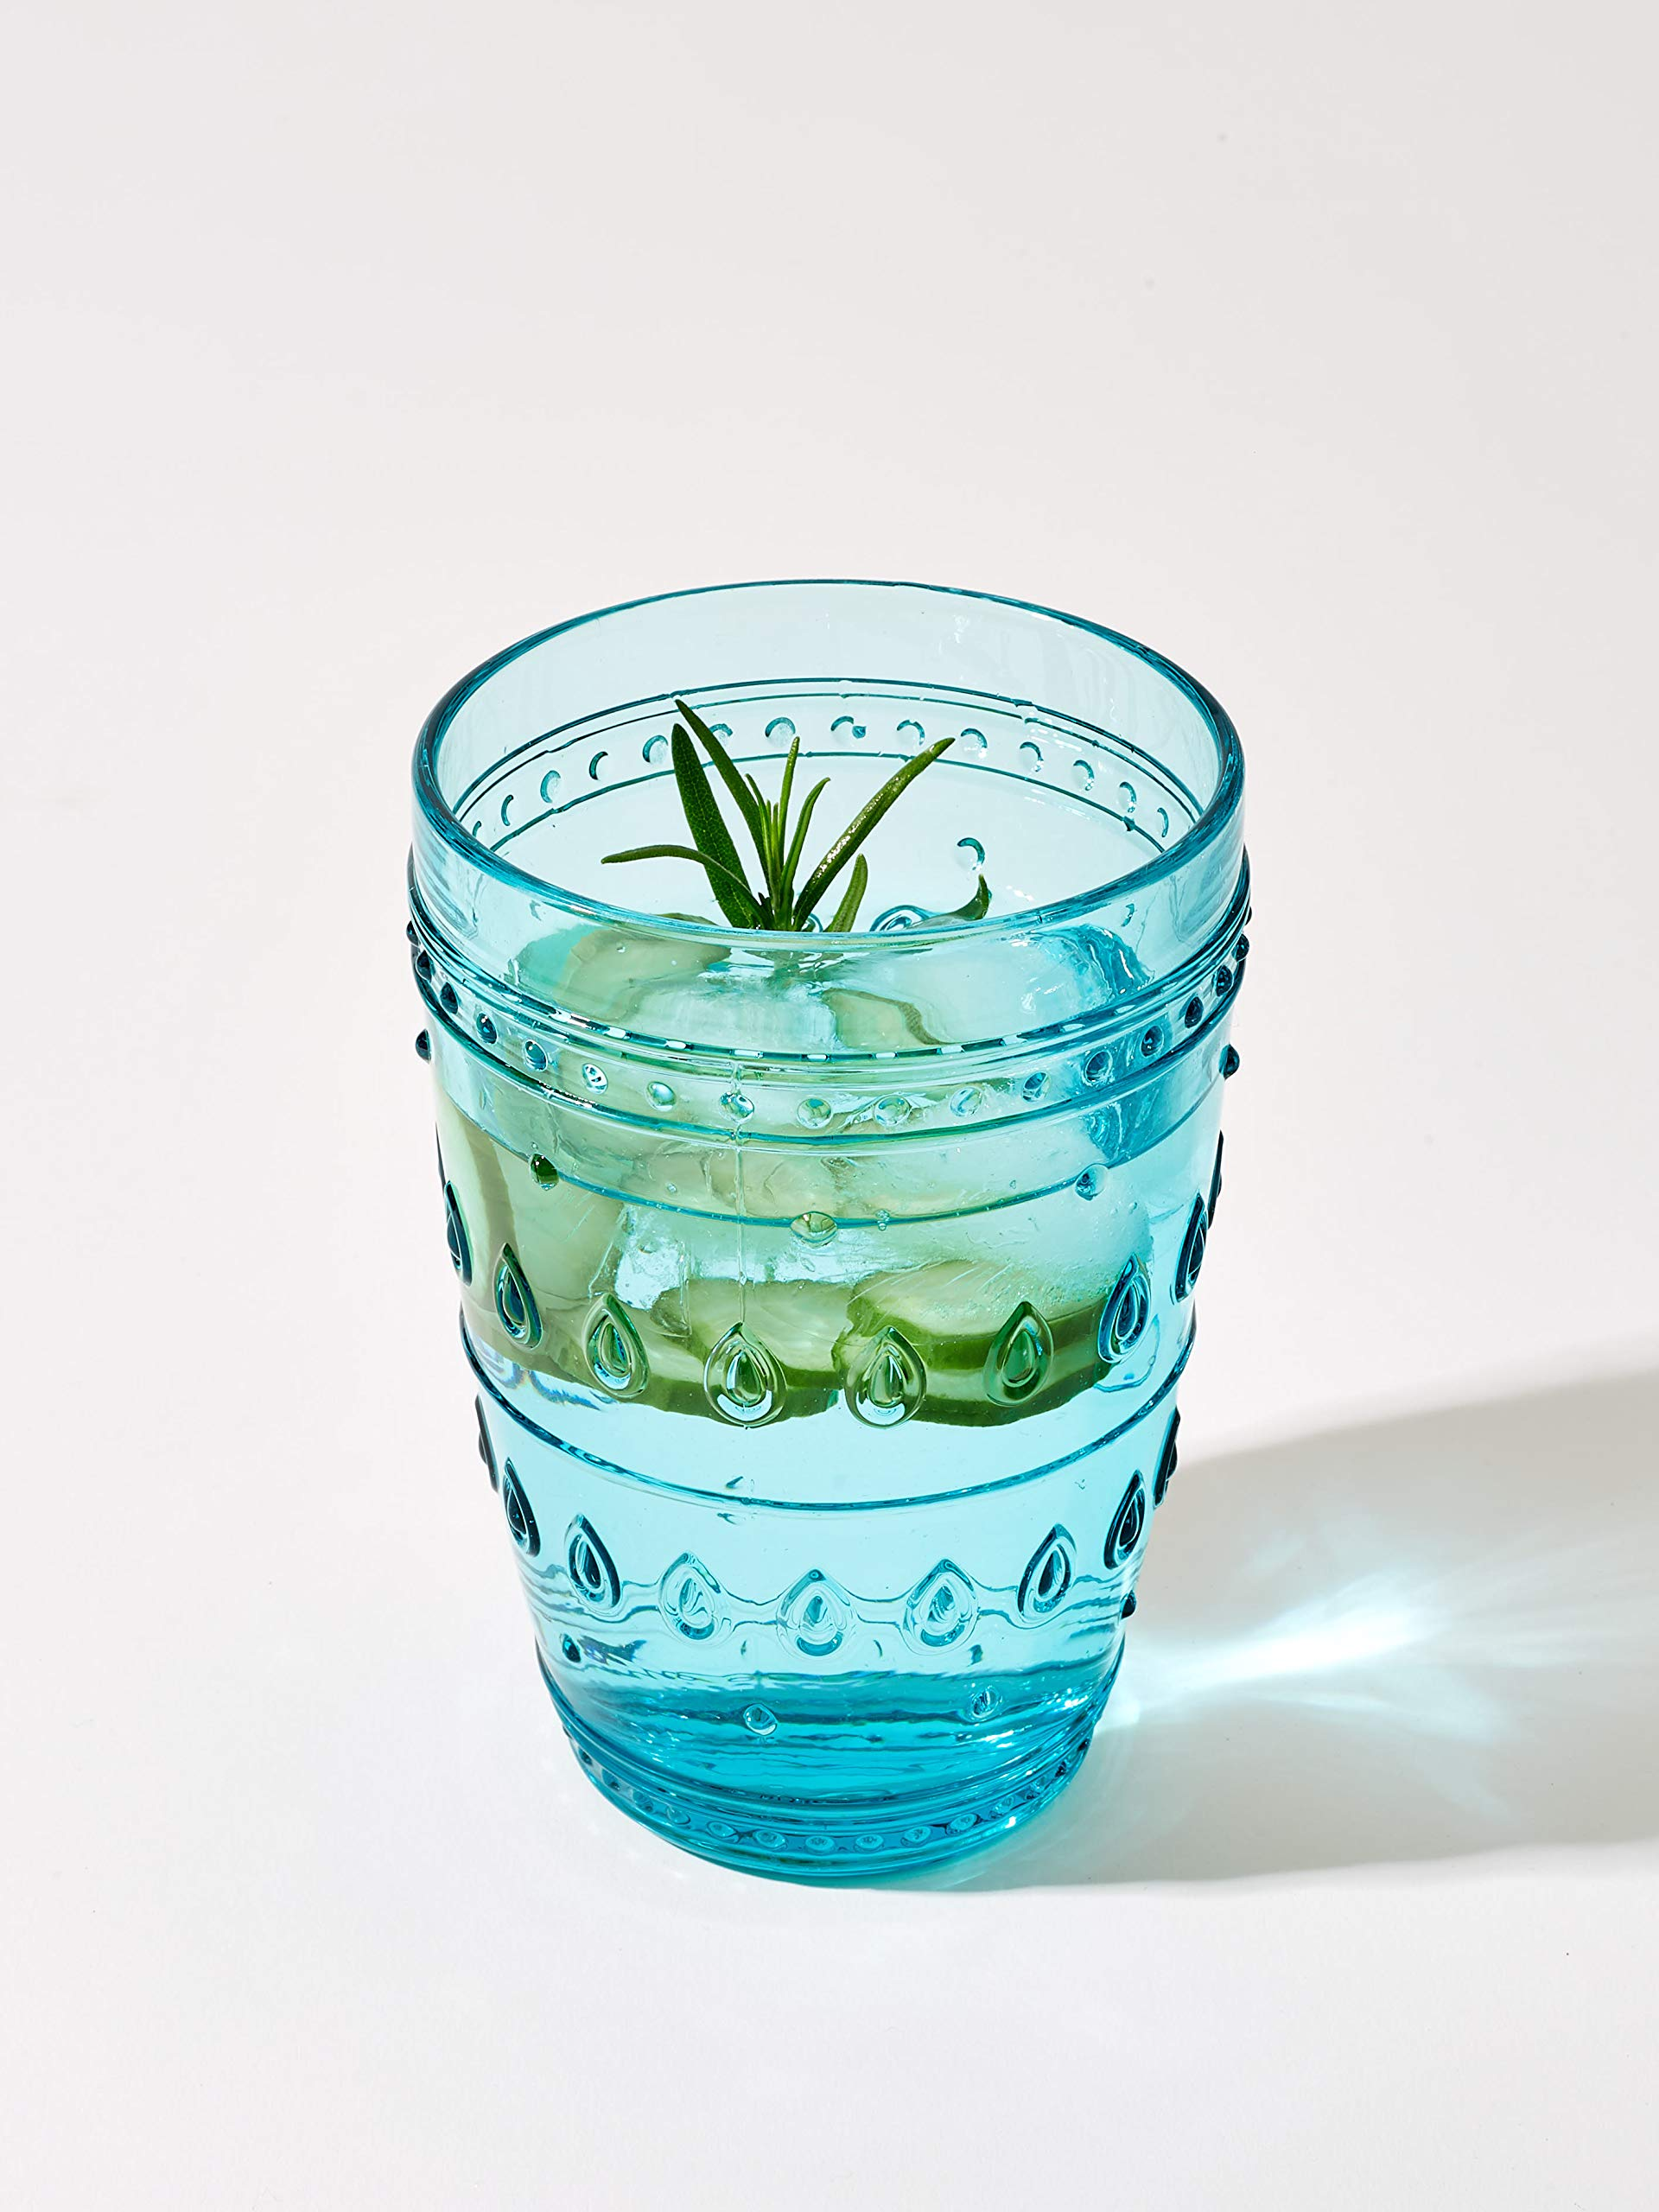 Euro Ceramica Fez Glassware Collection Highball Glasses, 14oz, Set of 4, Turquoise